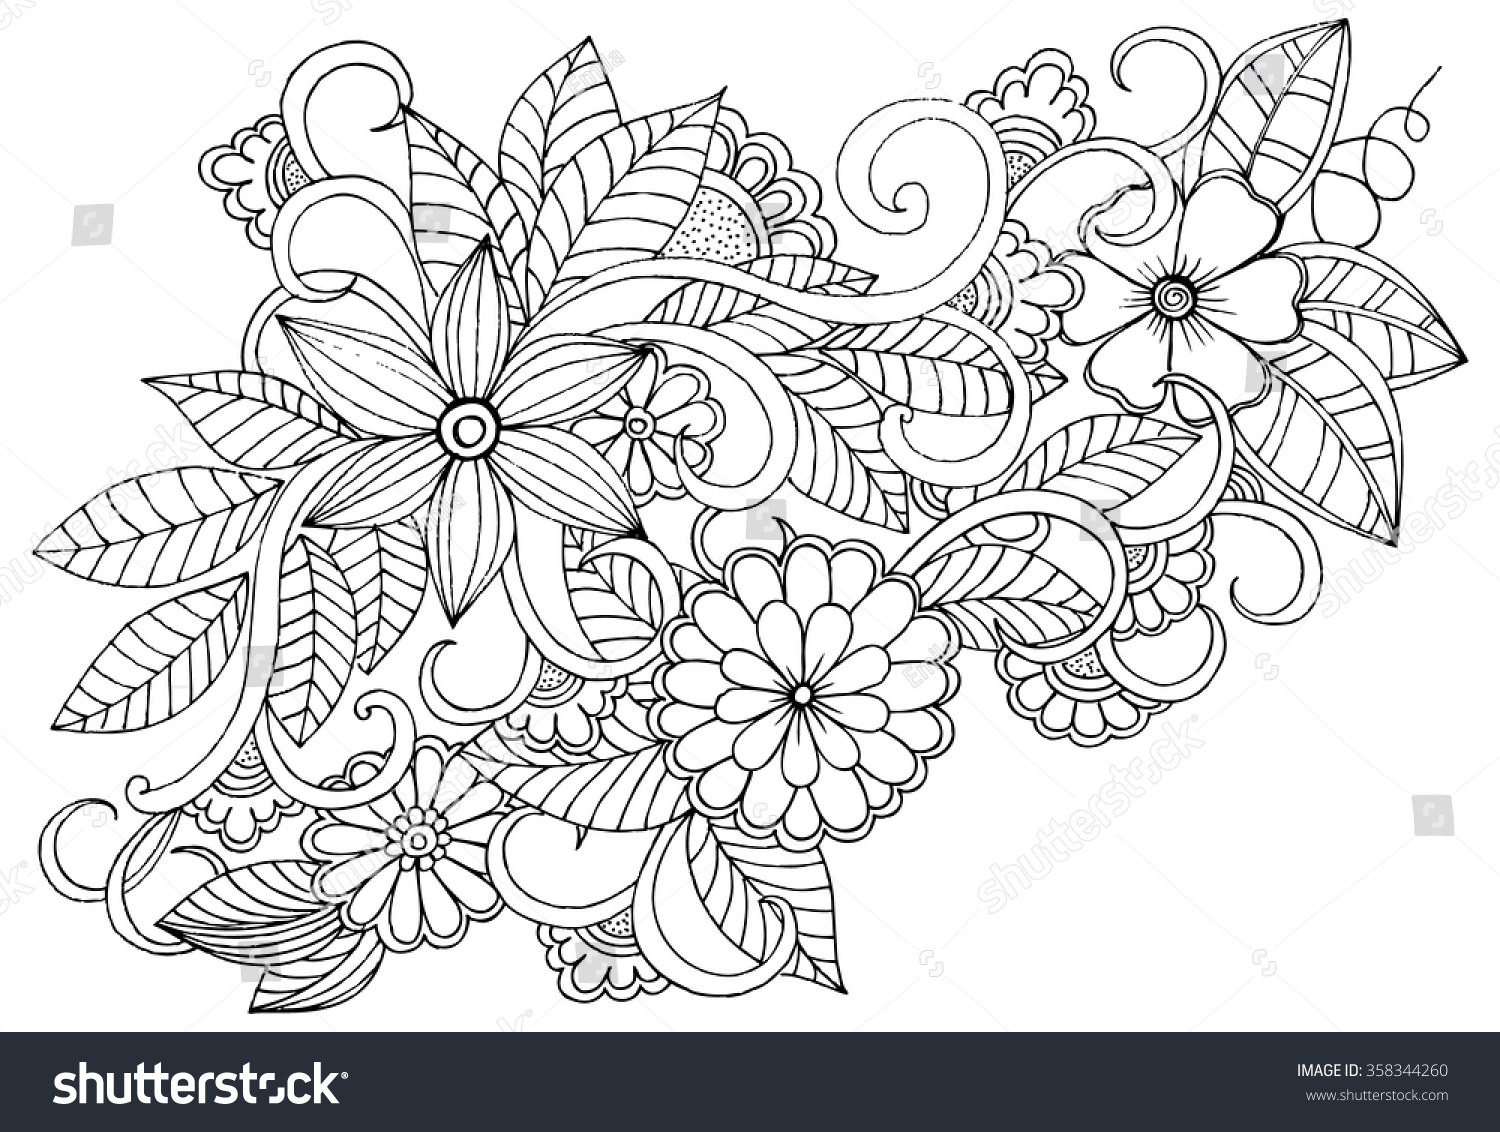 doodle floral pattern in black and white page for coloring book very